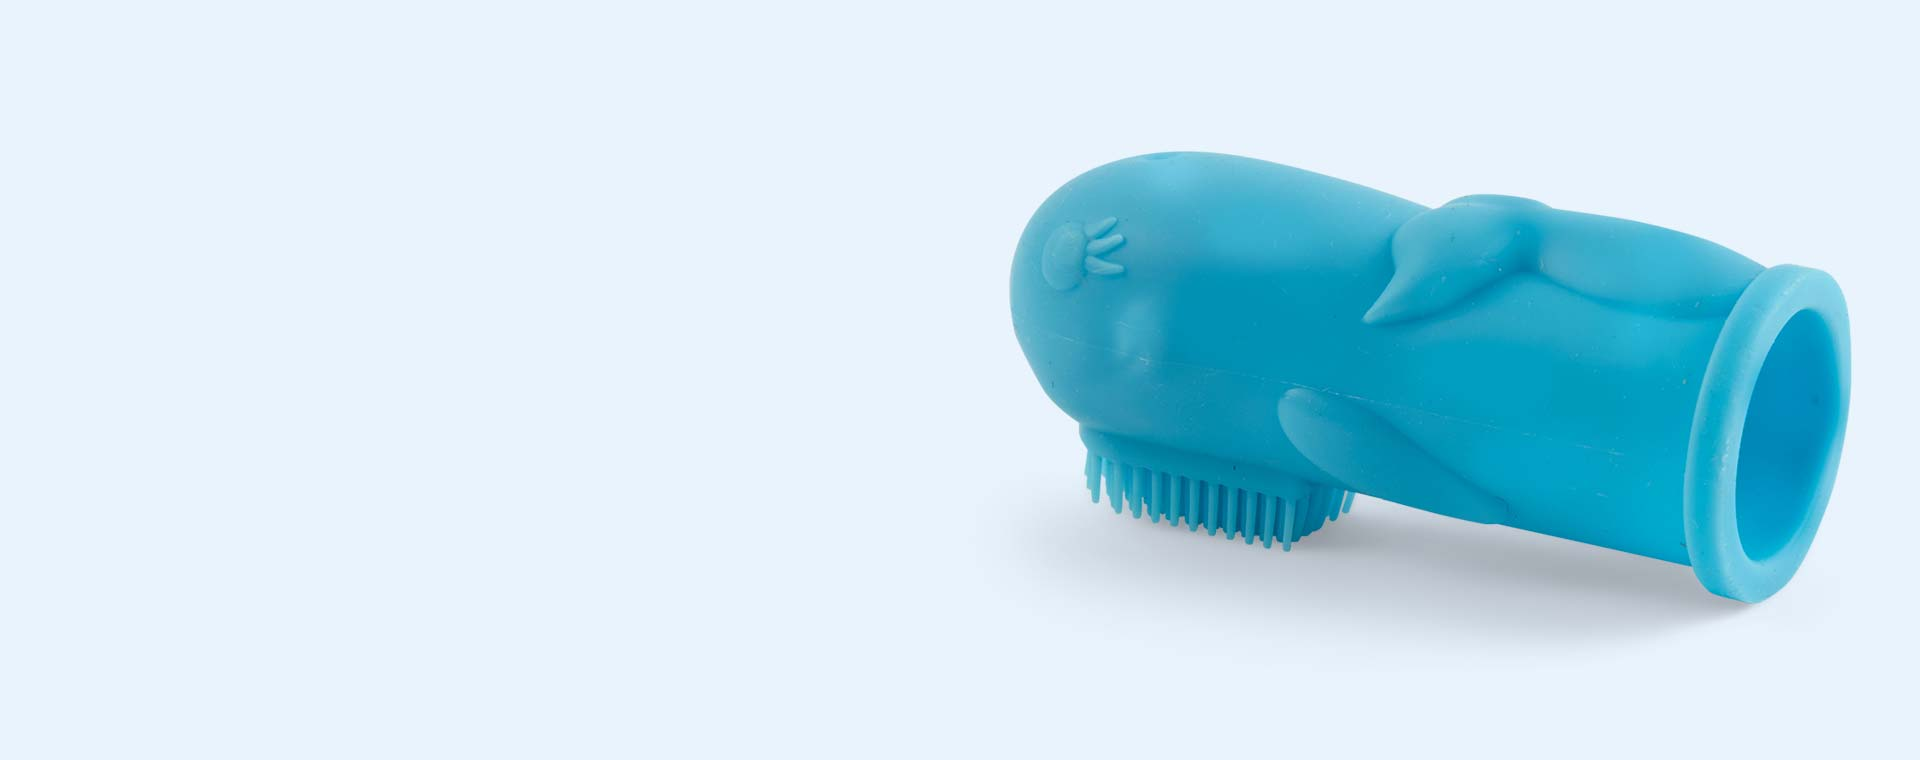 Willa the Whale Brushies Toothbrush